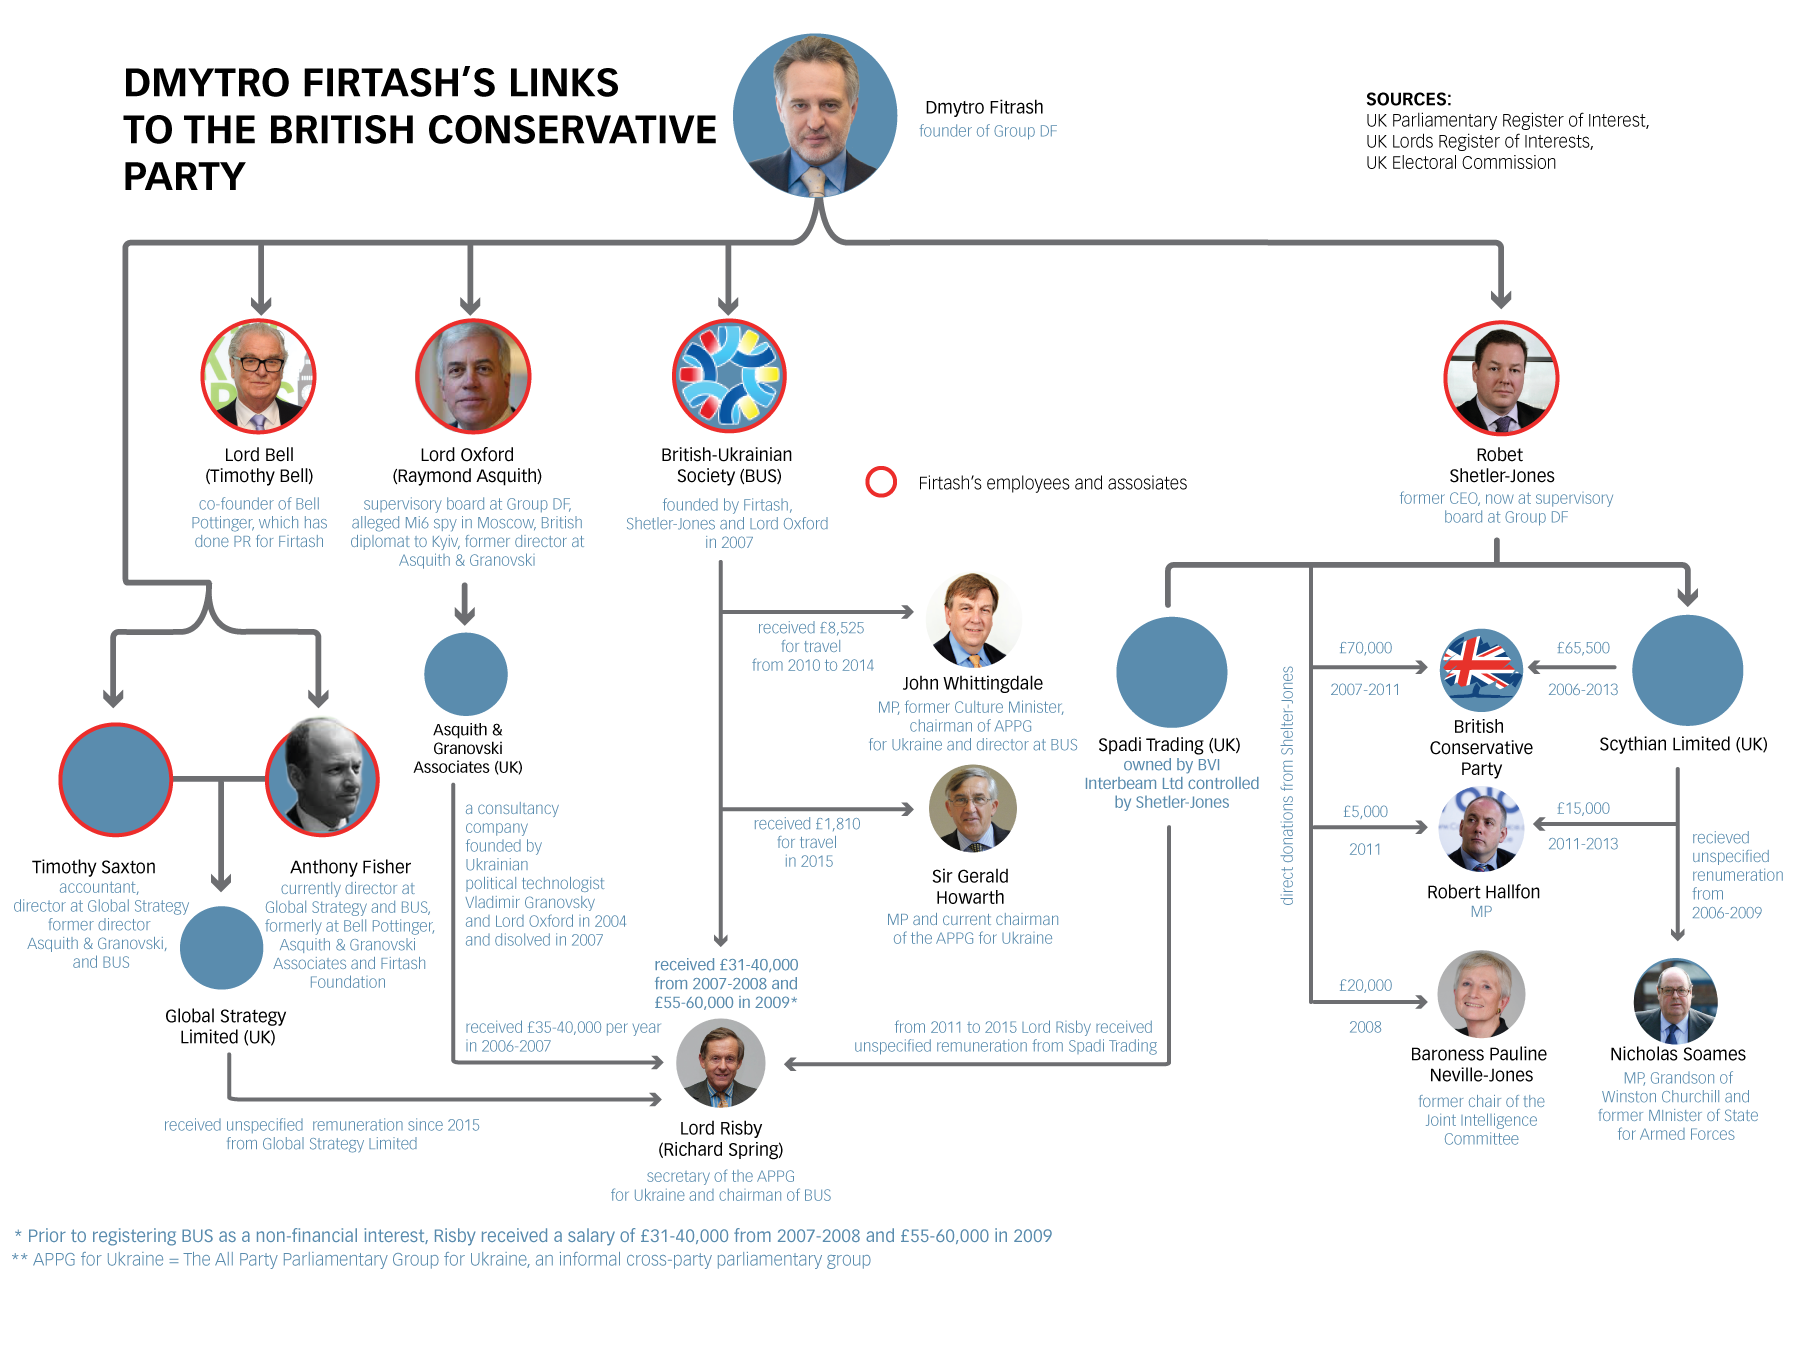 Dmytro Firtash's links to the British Conservative Party, according to both Houses' registers of interests and the UK party donations register